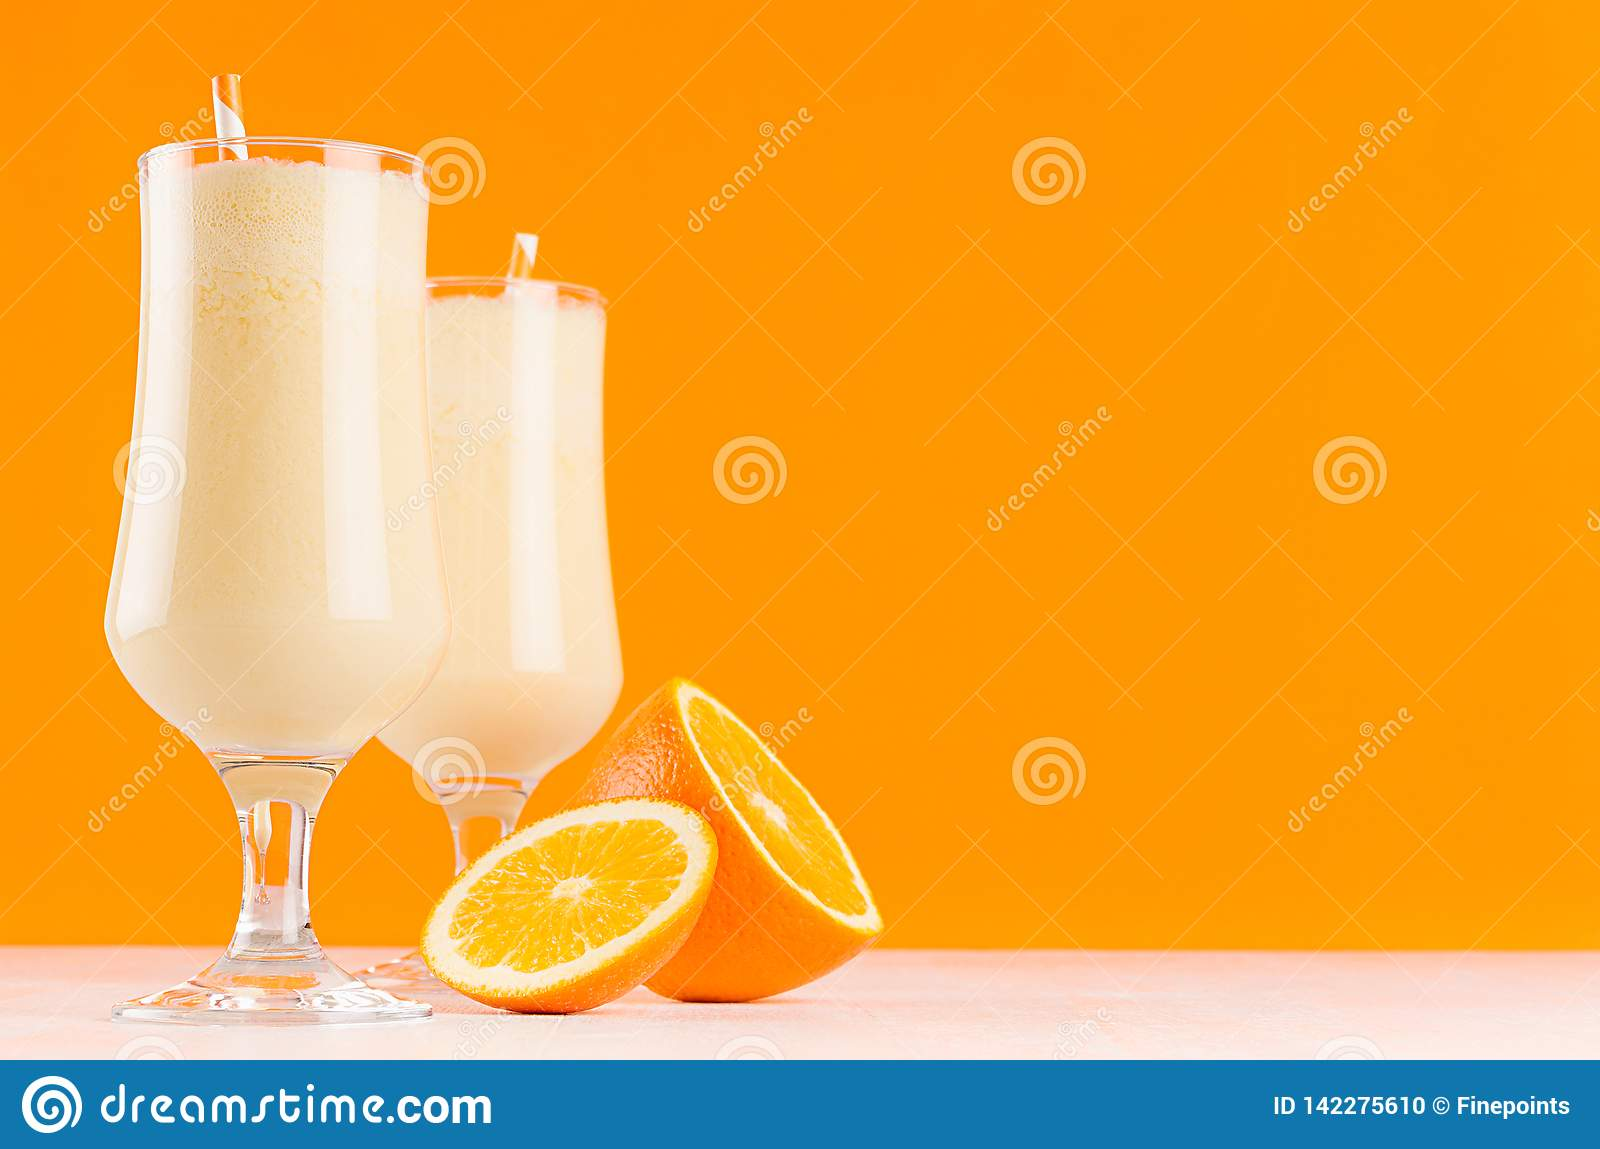 Bright oranges milkshakes with slices citrus, striped straw on white wooden table and colorful orange wall.